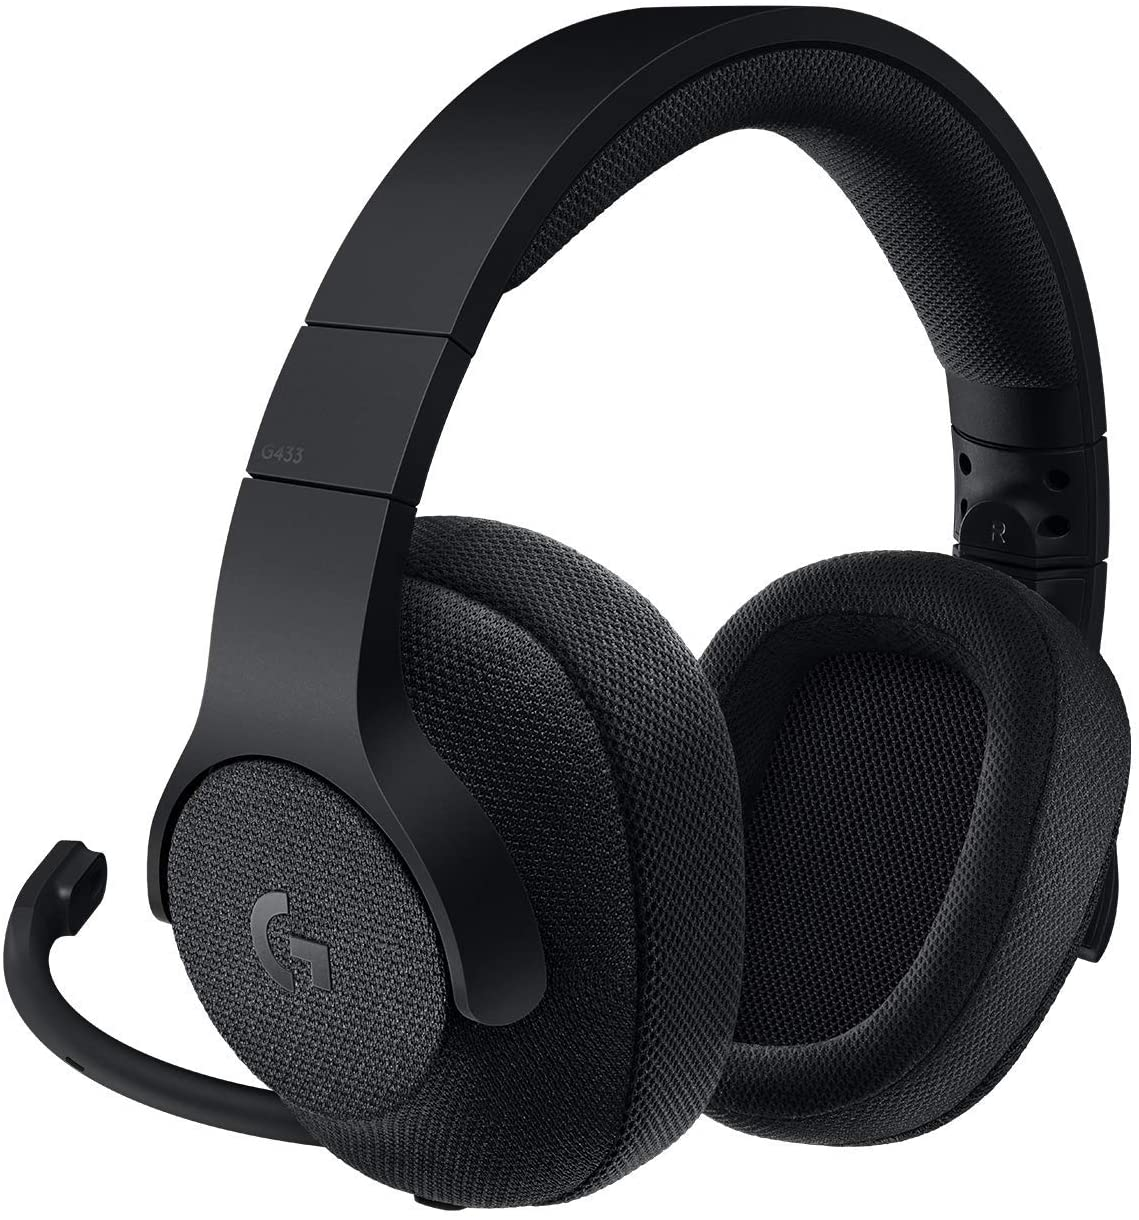 LOGITECH G433 WIRED SURROUND GAMING HEADSET